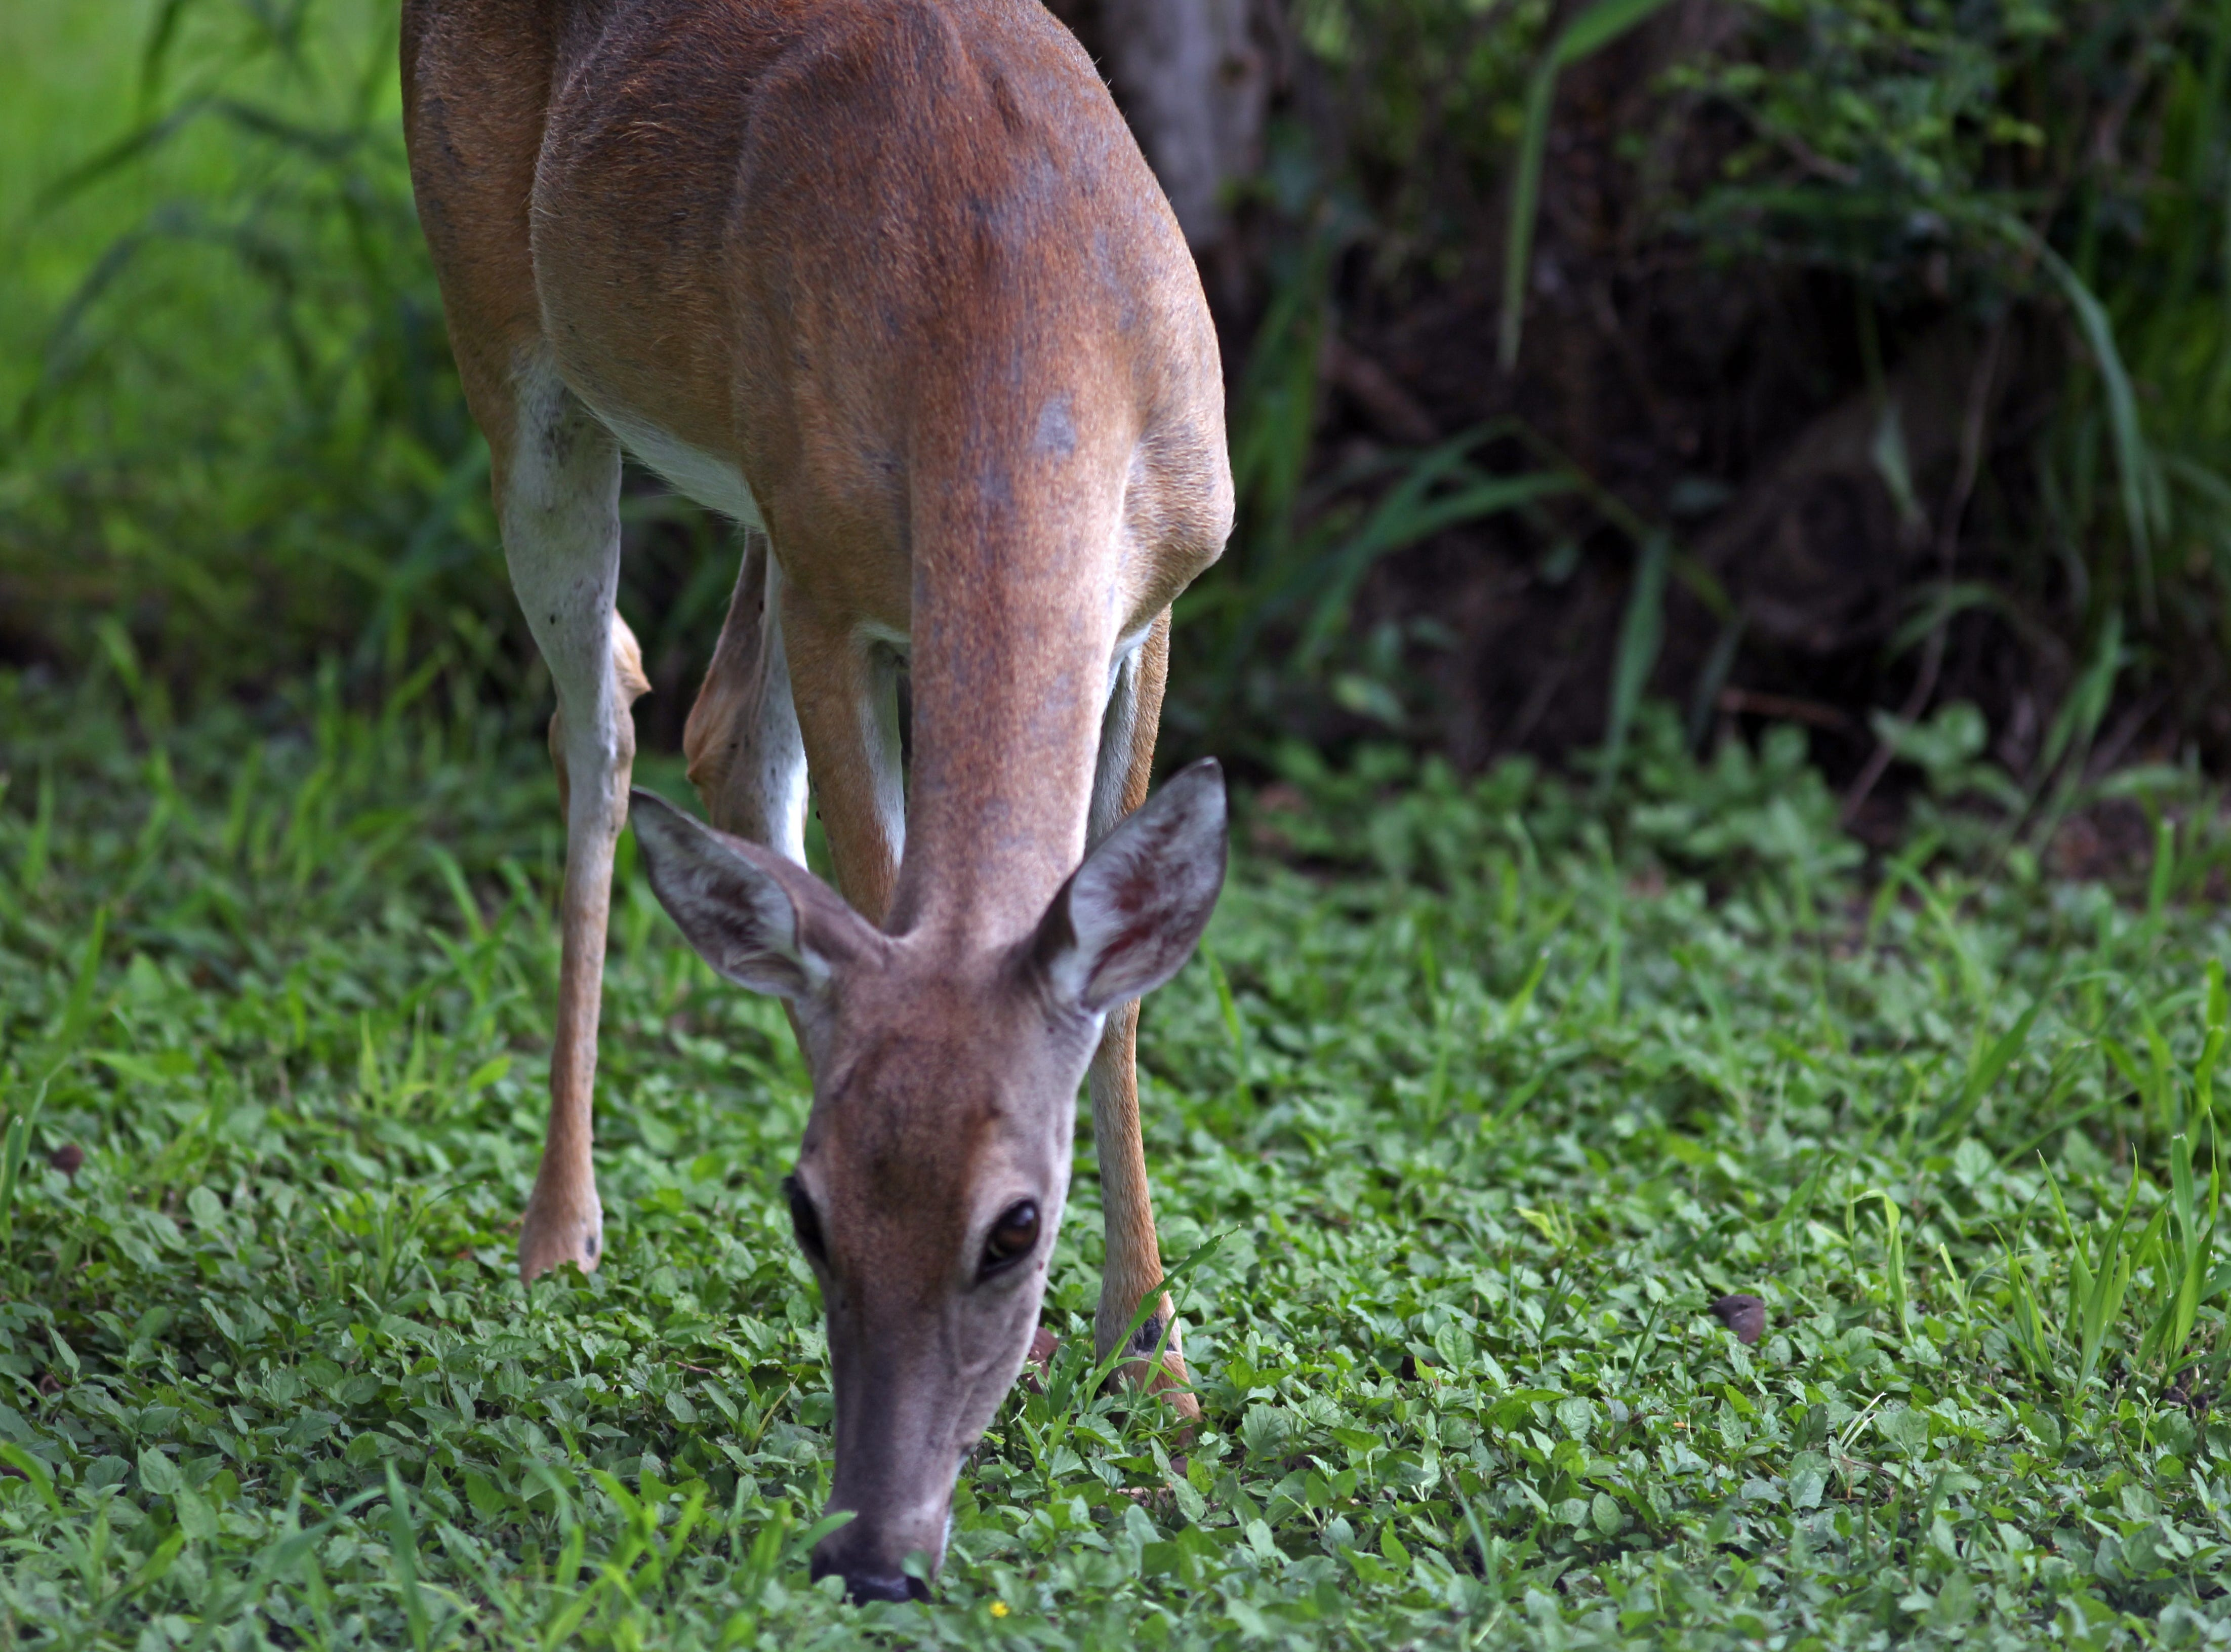 White-tailed deer are commonly spotted at Hazel Bazemore Park on the Nueces River.